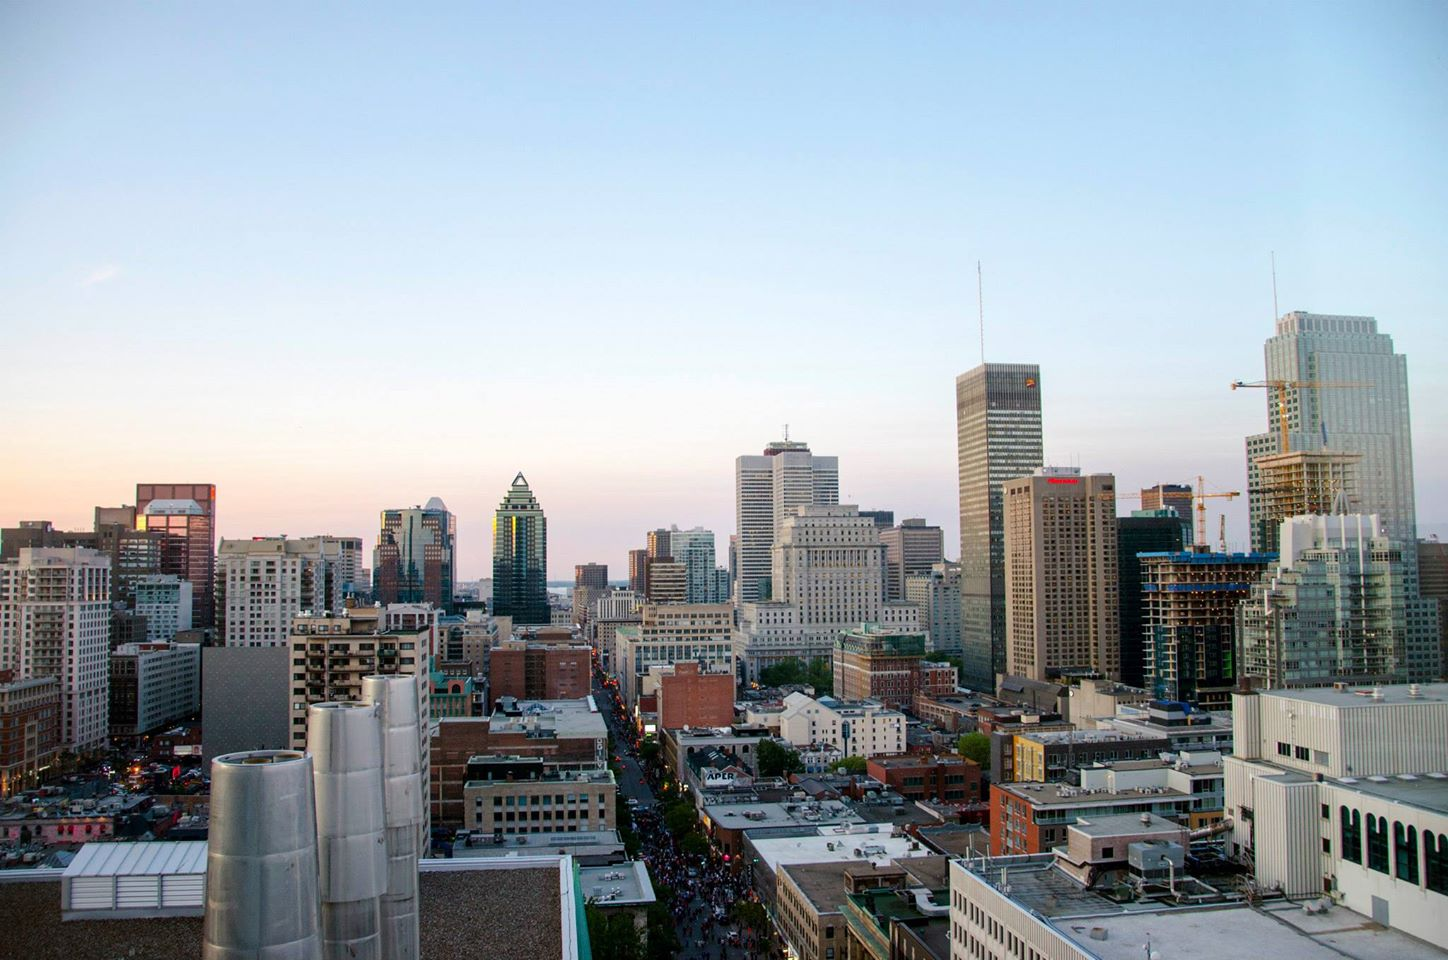 Jenkins, Cheyenne.  Montreal Cityscape . 2015. Digital Photography. Montreal, Quebec